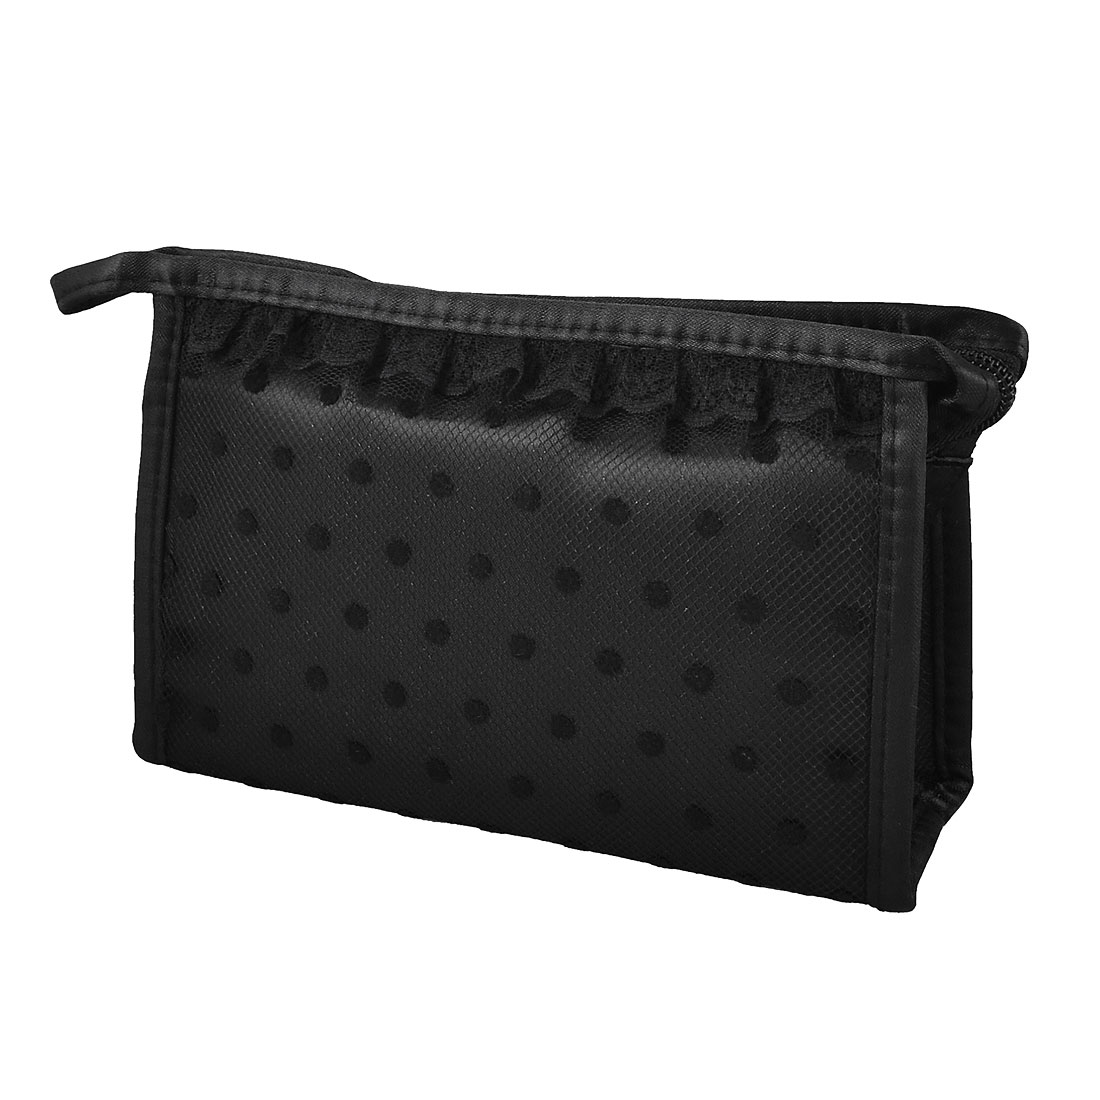 Zip up Rectangular Black Dots Meshy Lace Makeup Cosmetic Case Hand Bag Perfume Holder